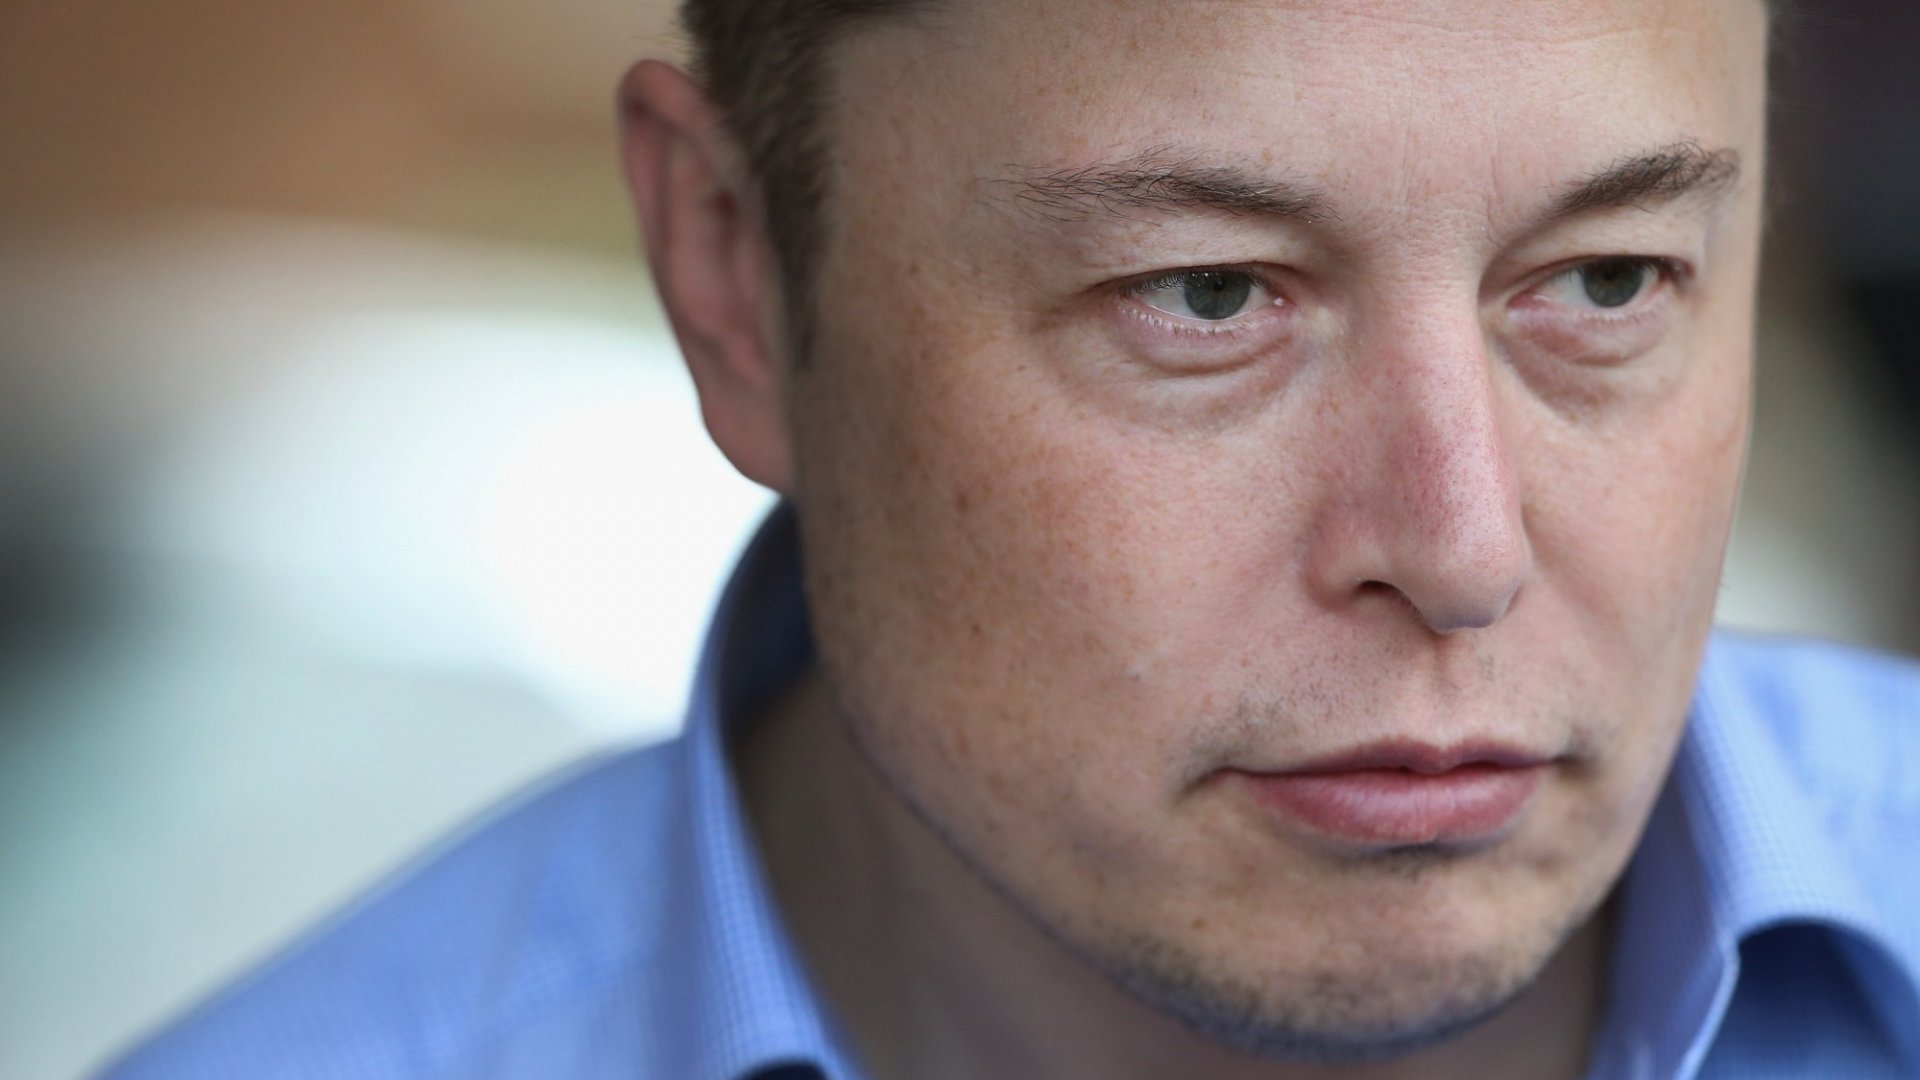 Elon Musk Shoots Down Accusations of Hazardous Working Conditions at Tesla Factory